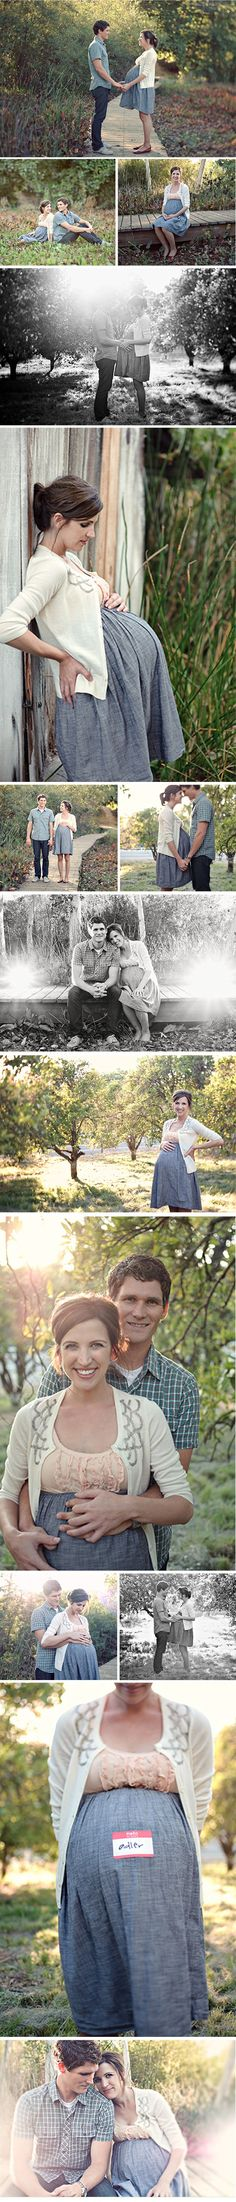 Beautiful maternity shoot